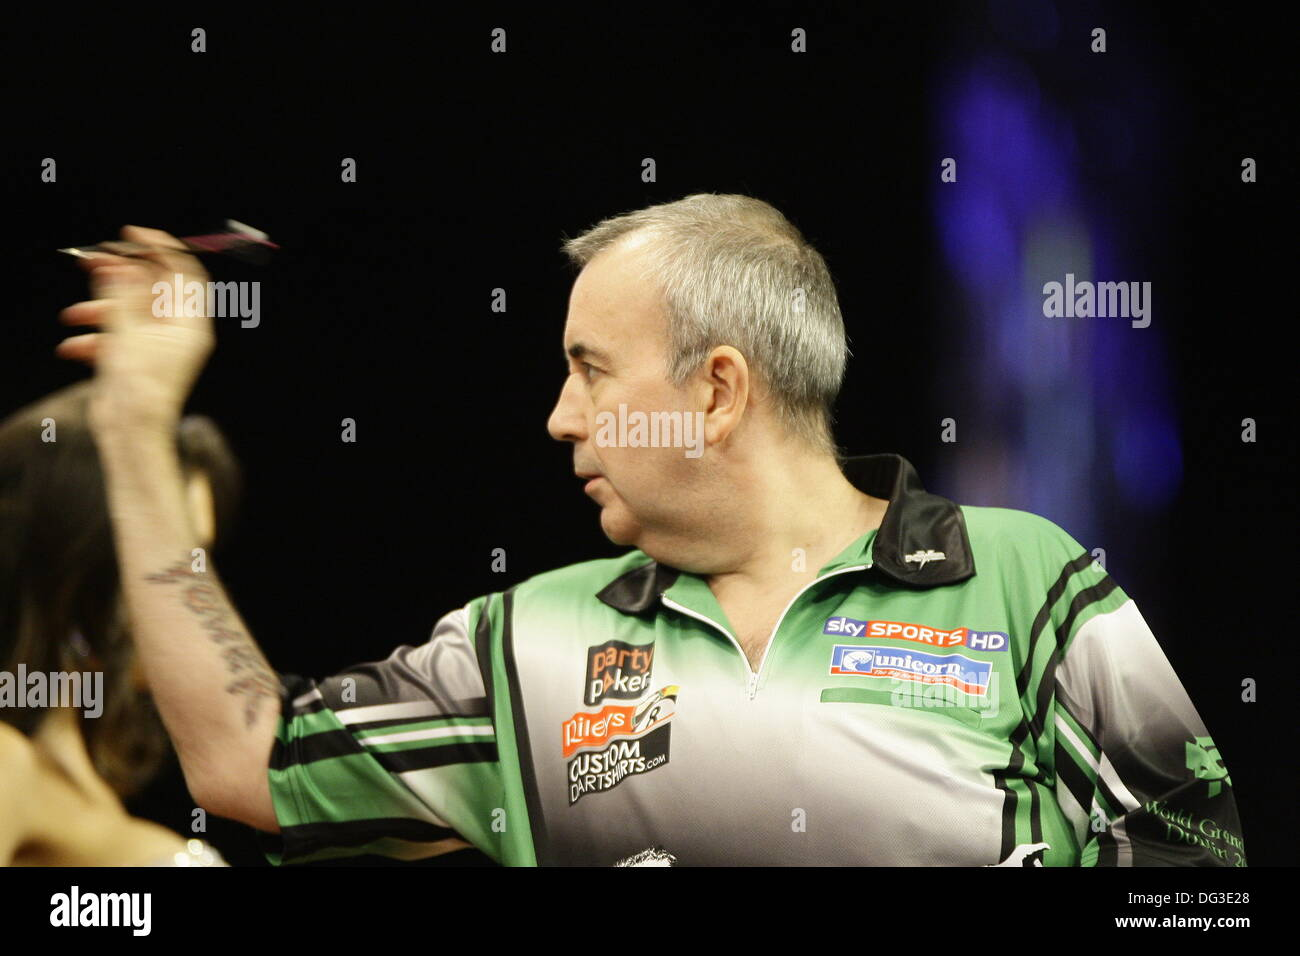 Dublin, UK. 13th Oct, 2013. Dublin, UK. 13th Oct, 2013. PDC Party Poker World Grand Prix  Darts  -The Final: Phil Taylor in action against Dave Chisnall at the Cirtwest Hotel, Dublin, Ireland © Michael Cullen/Alamy Live News Credit:  Michael Cullen/Alamy Live News - Stock Image